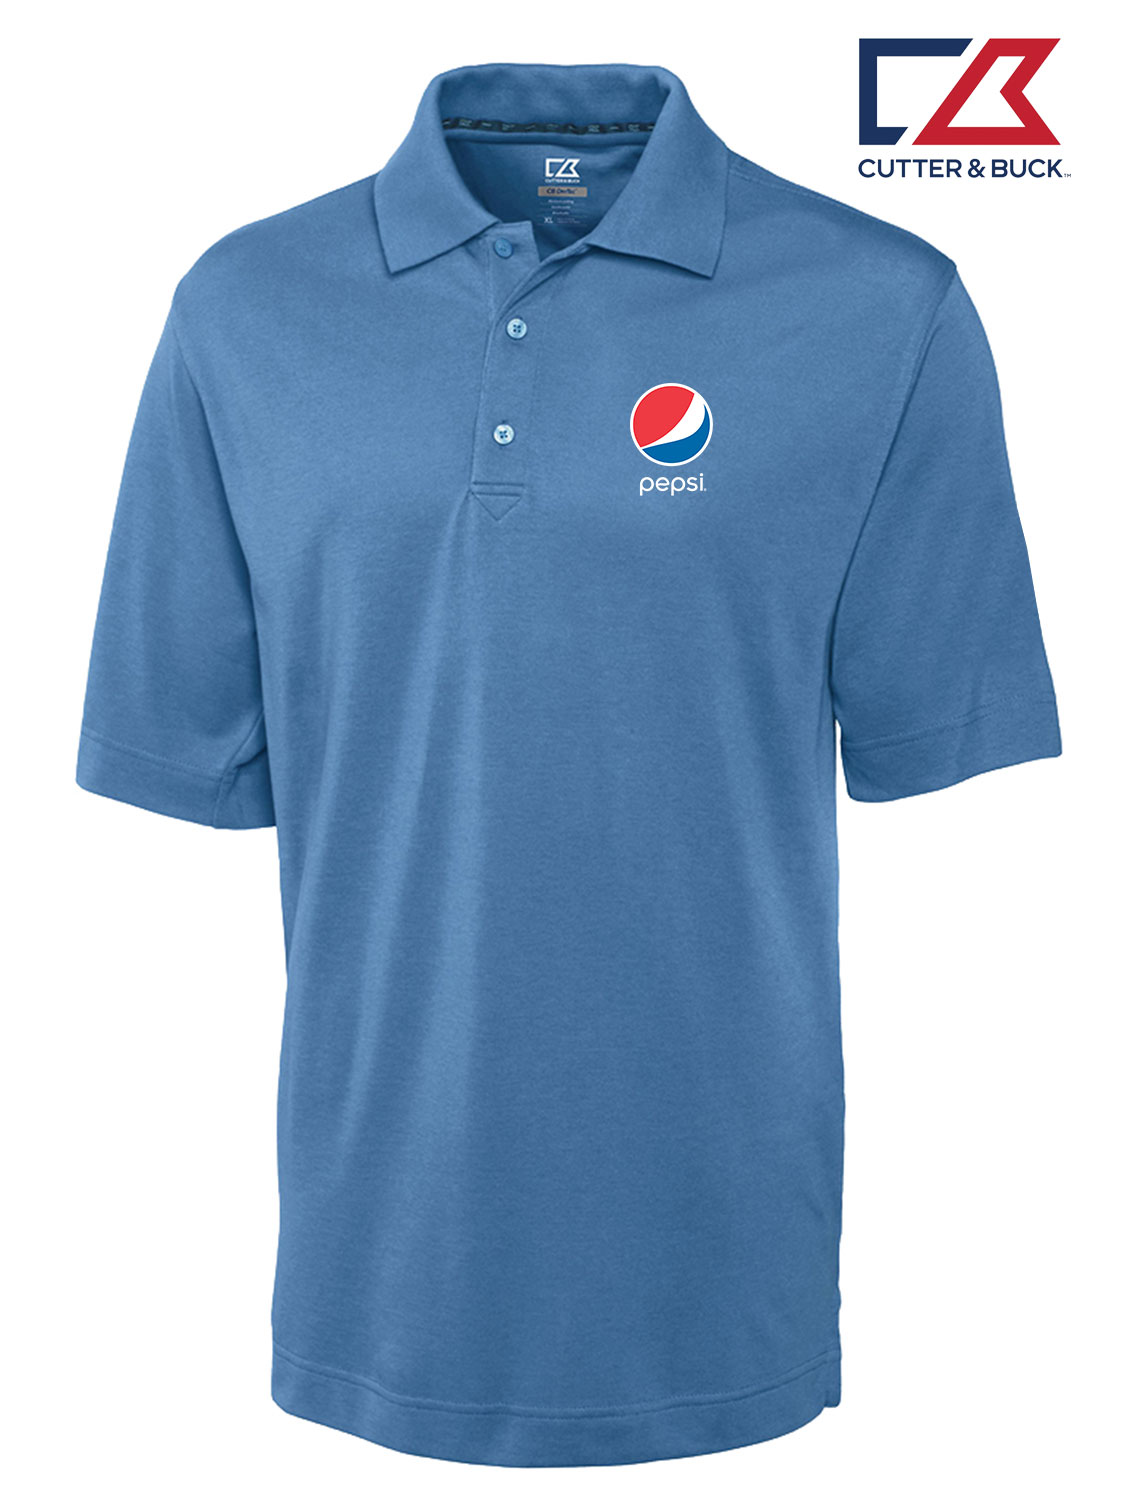 Cutter & Buck Men's CB DryTec Championship Polo